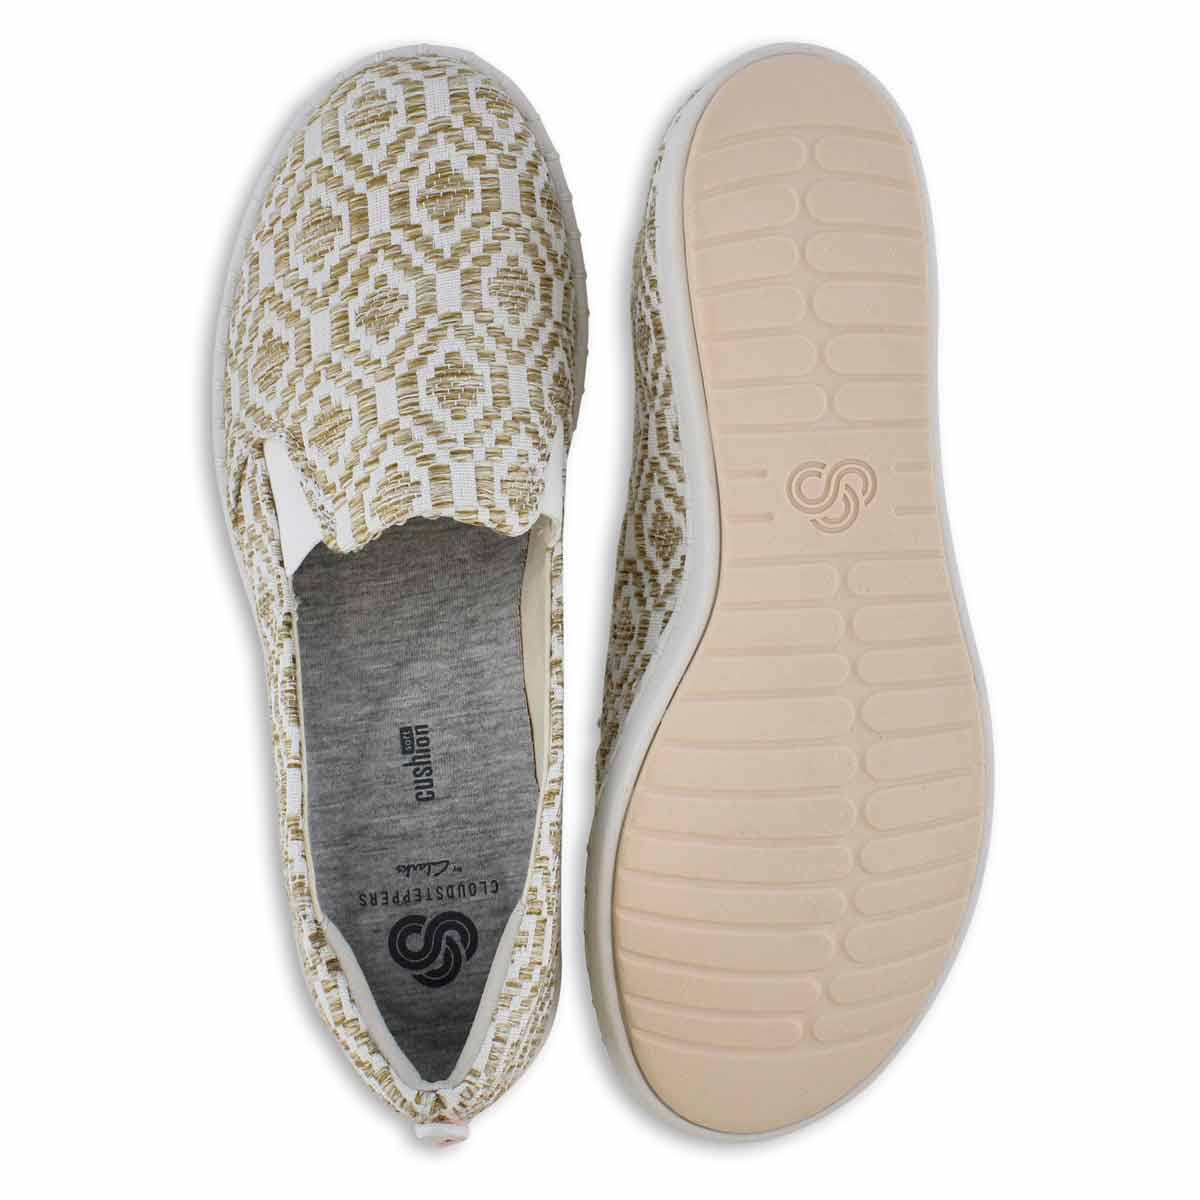 Lds Step Glow Slip nat/wht casual loafer